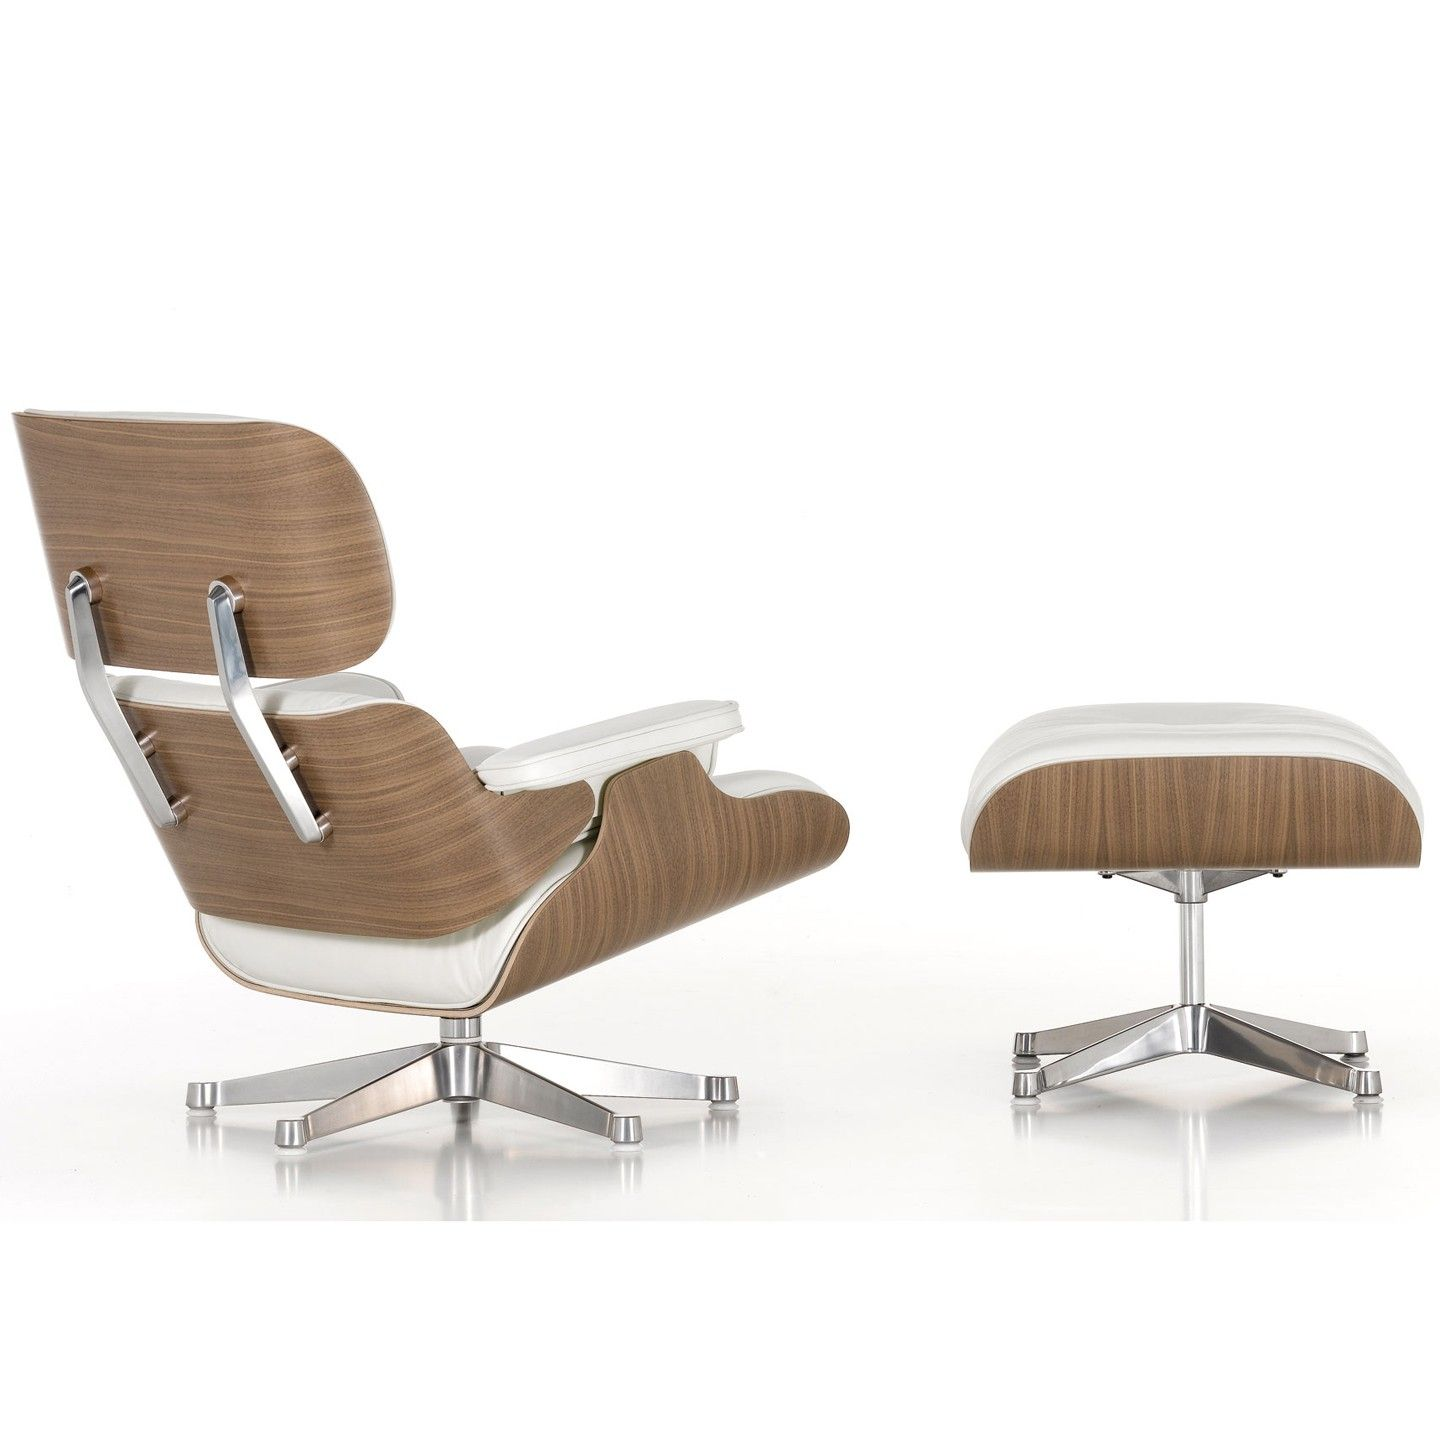 Eames Lounge chair and ottoman by Charles and Ray Eames